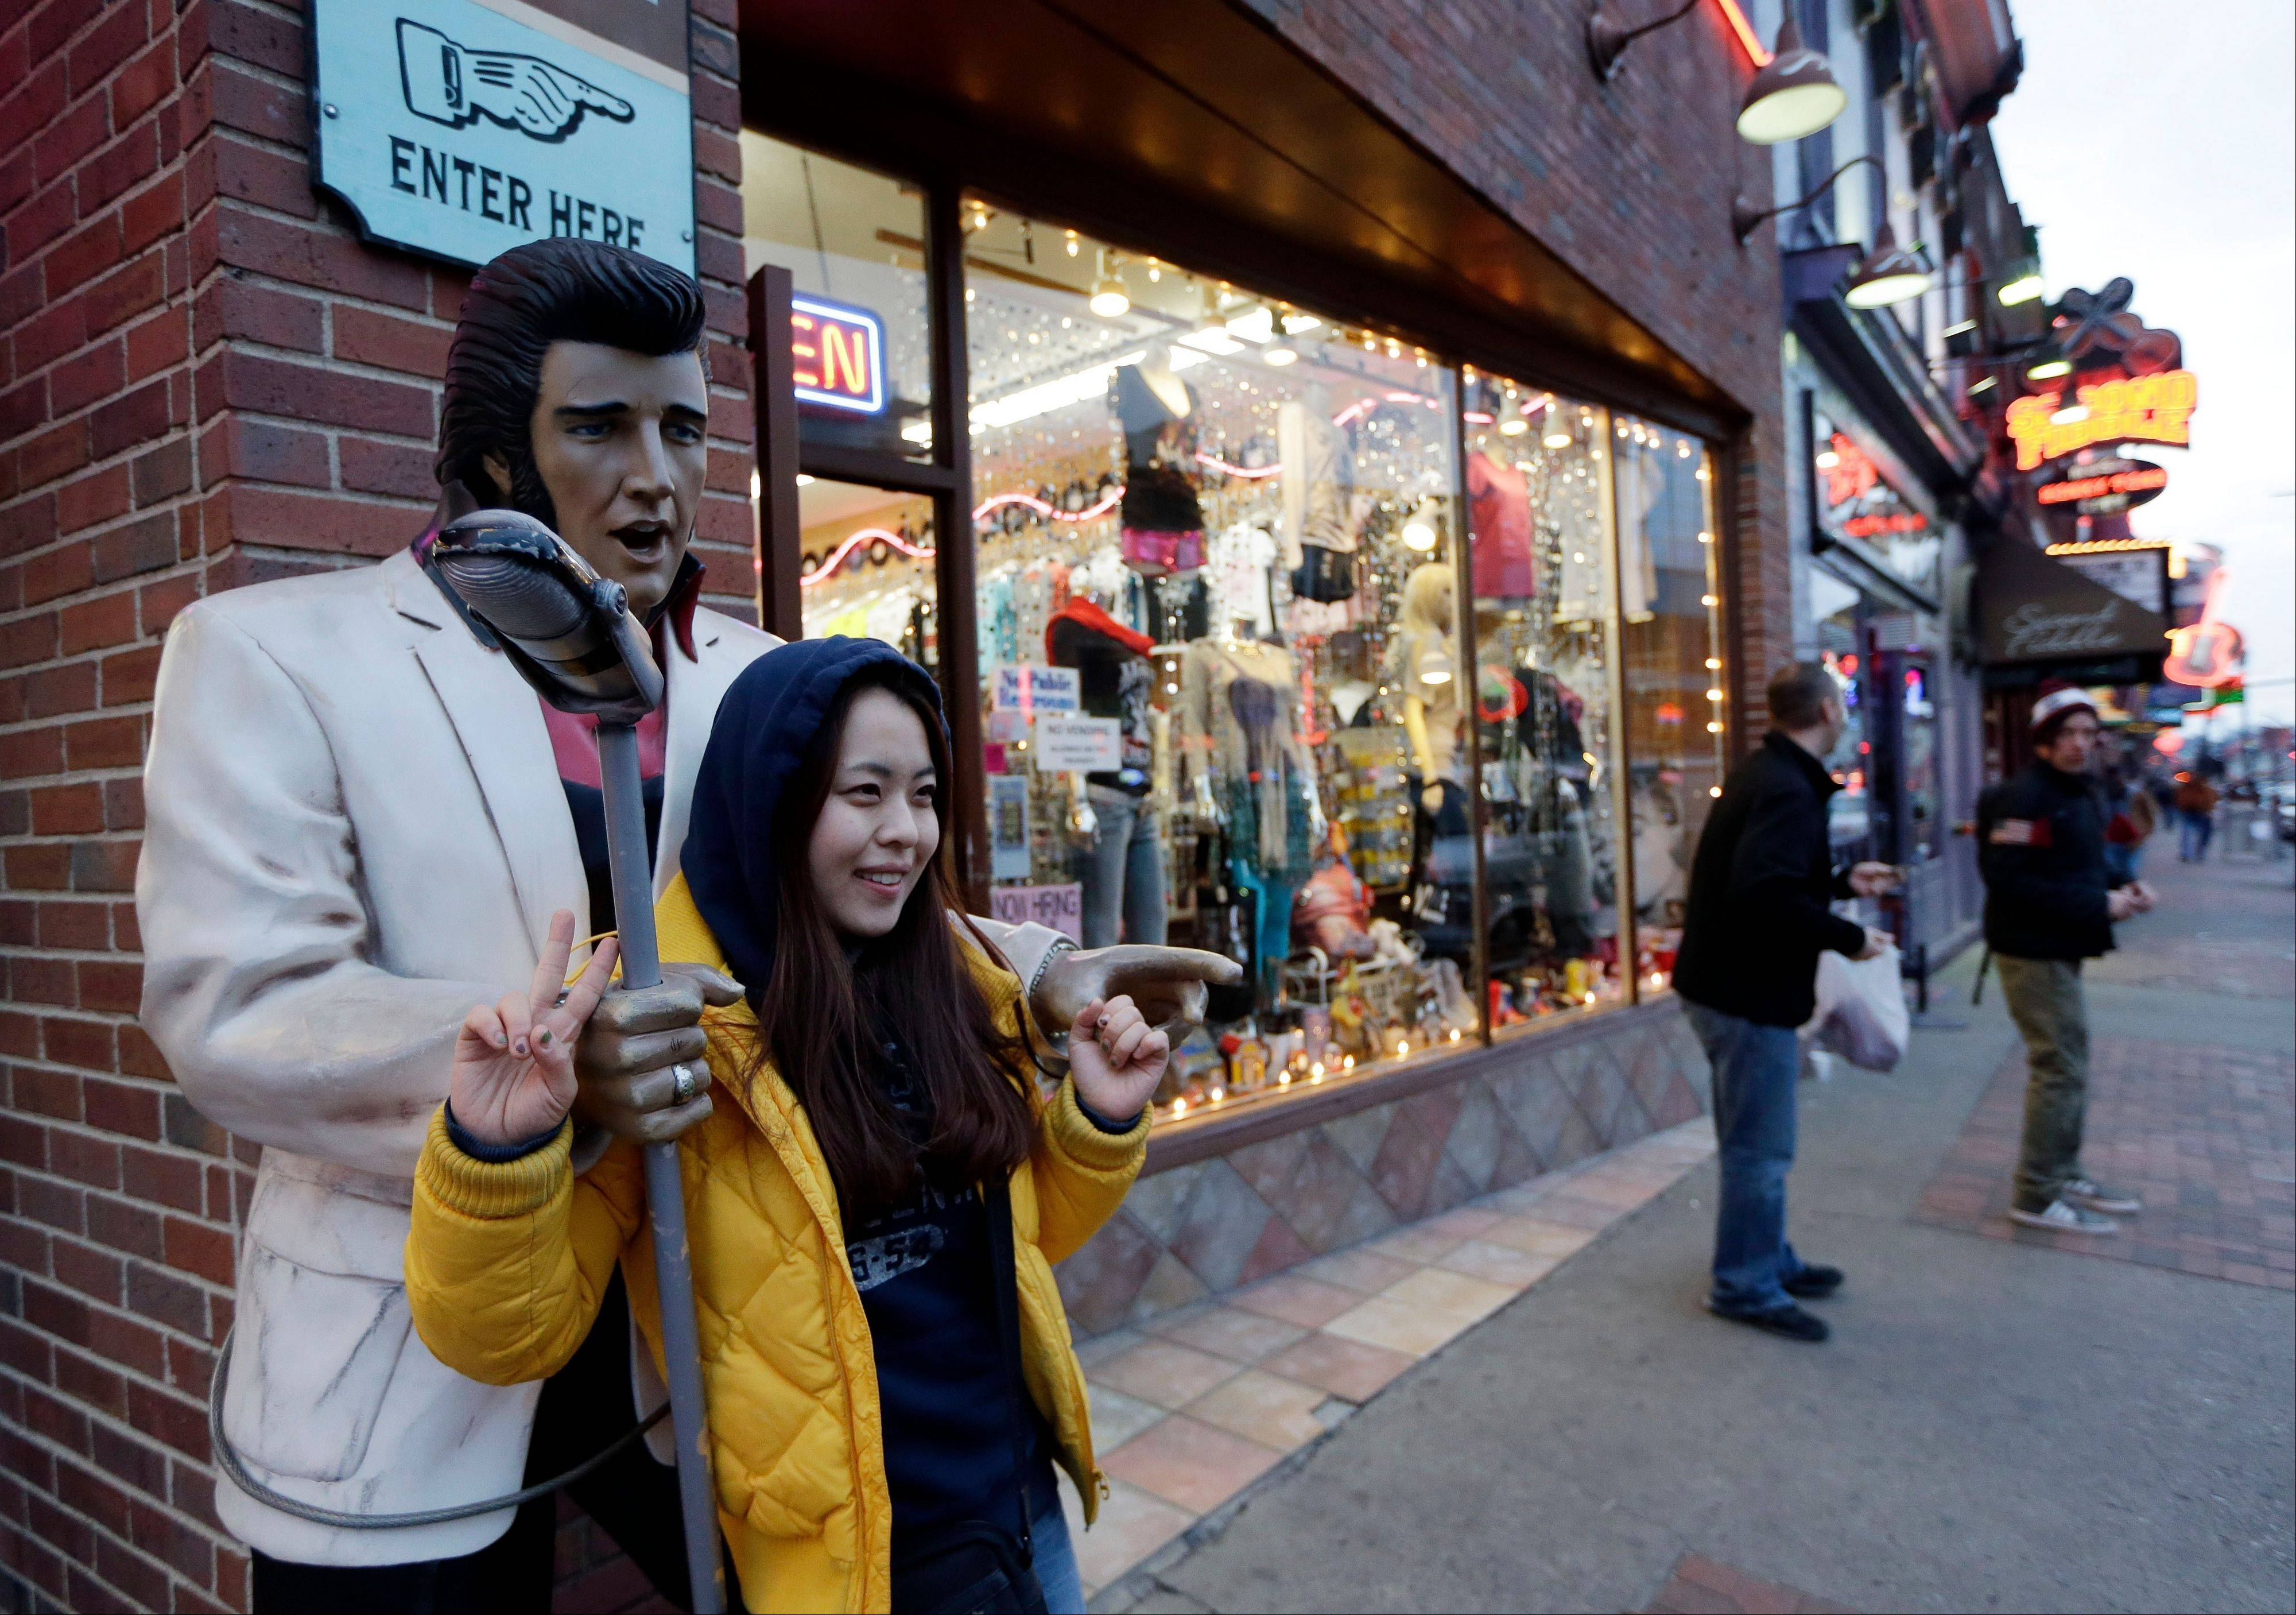 Kim Young, of Seoul, South Korea, poses for a photo by a statue of Elvis Presley while visiting Broadway in Nashville, Tenn. Broadway is lined with honky tonks, restaurants and souvenir shops.